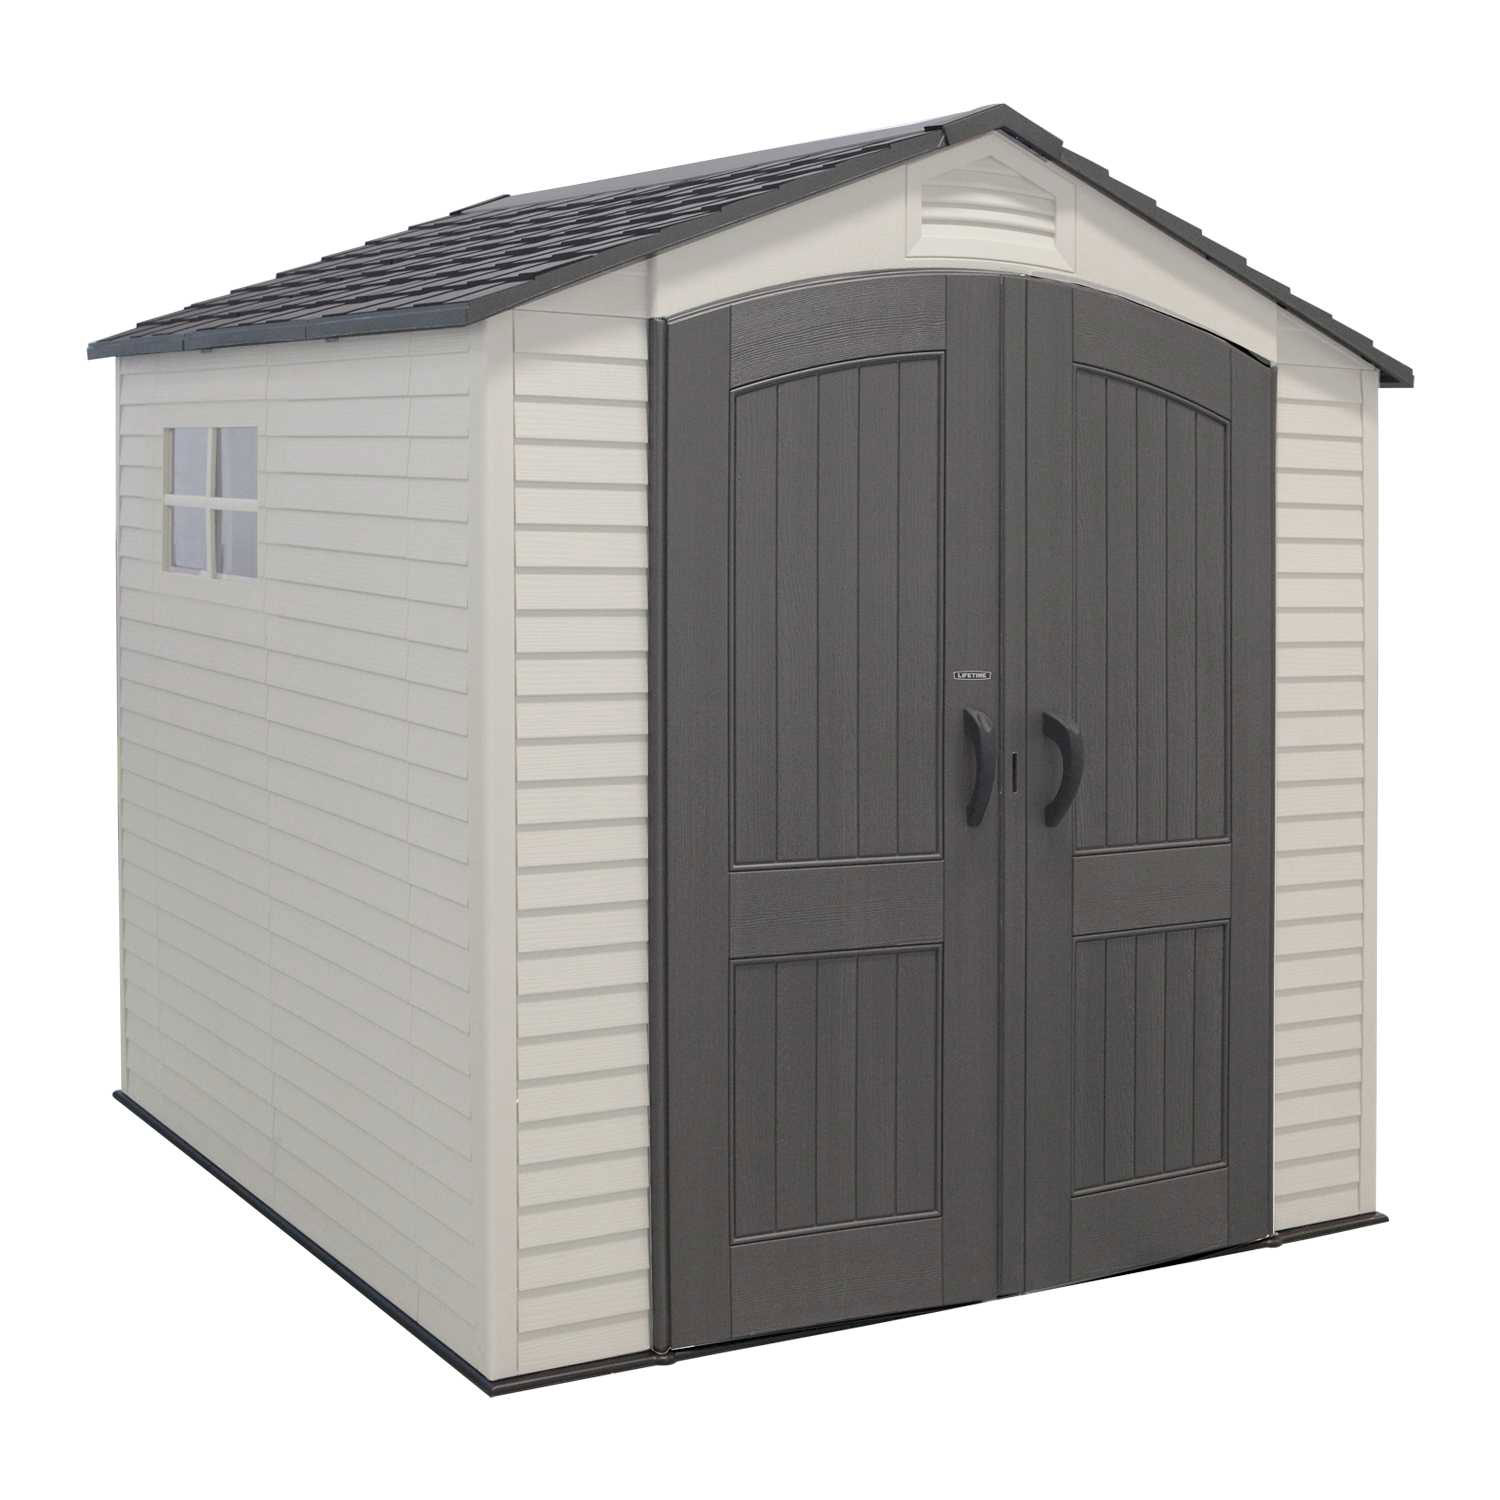 Lifetime 7 Ft. x 7 Ft. Outdoor Storage Shed, 60042